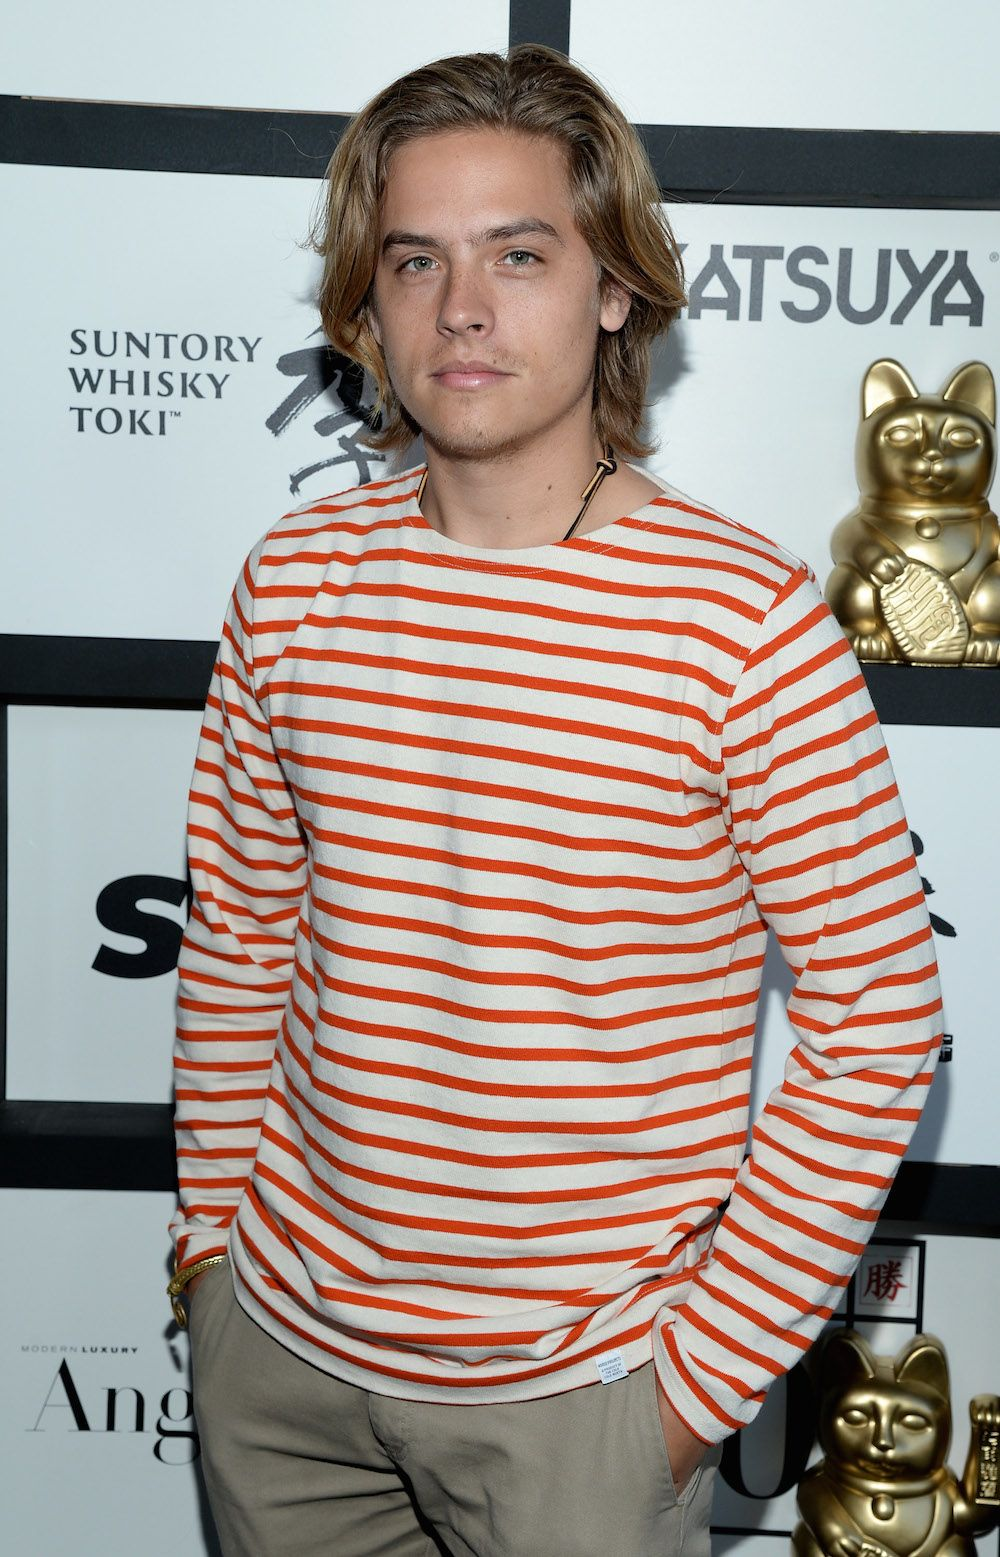 Hacked Dylan Sprouse nude photos 2019